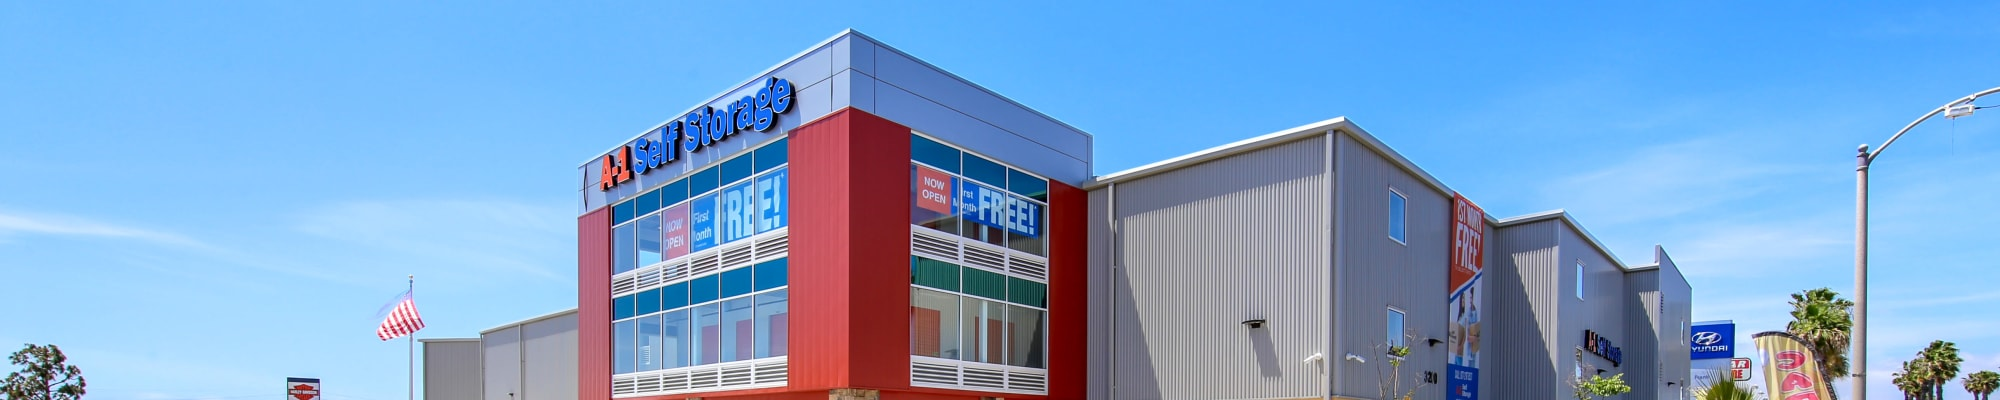 Storage options for students in San Jose, California